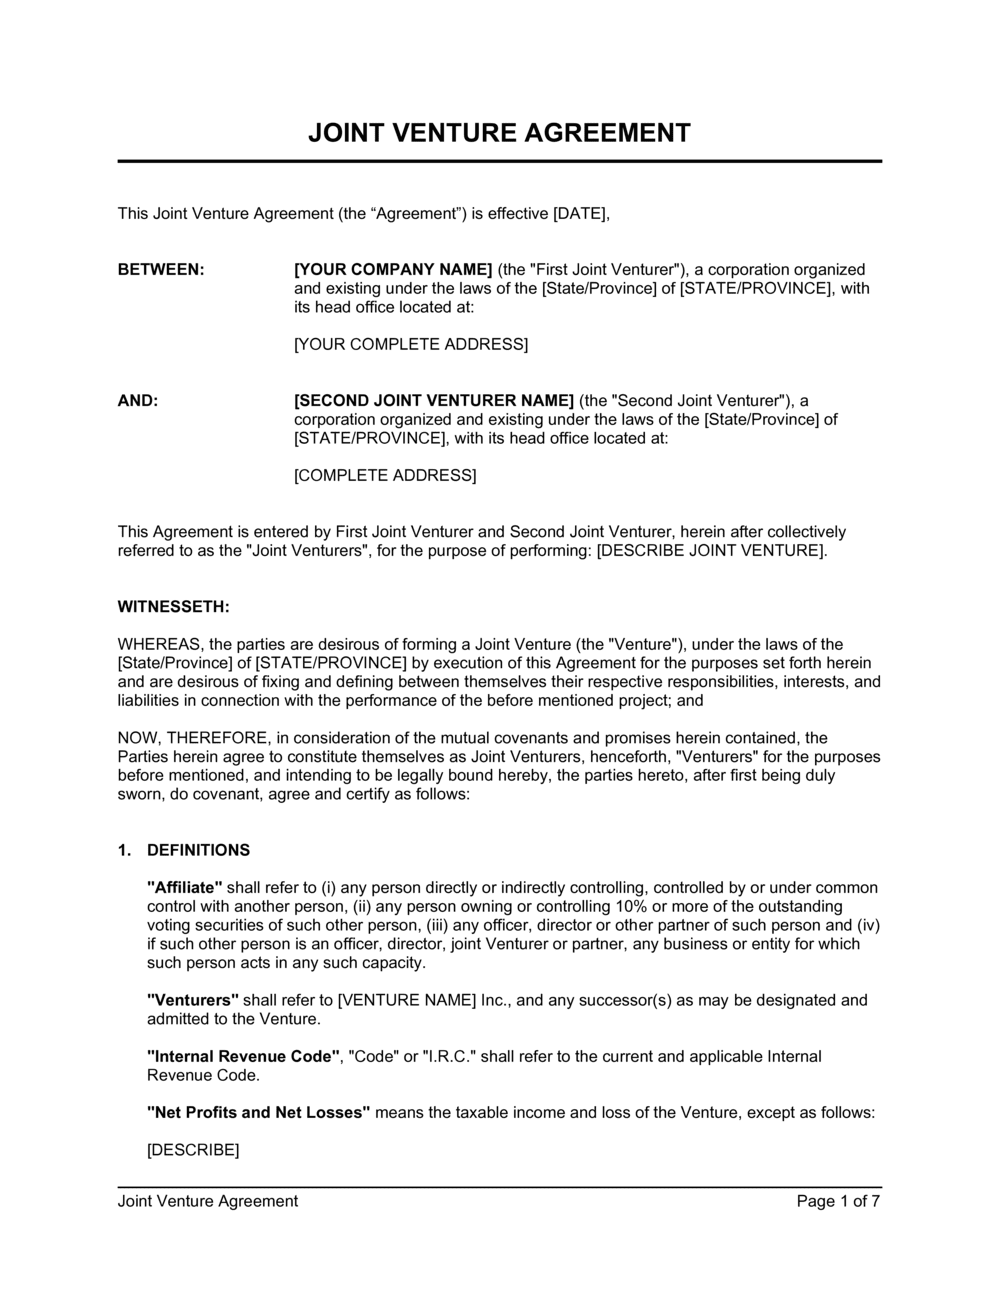 Business-in-a-Box's Joint Venture Agreement Template